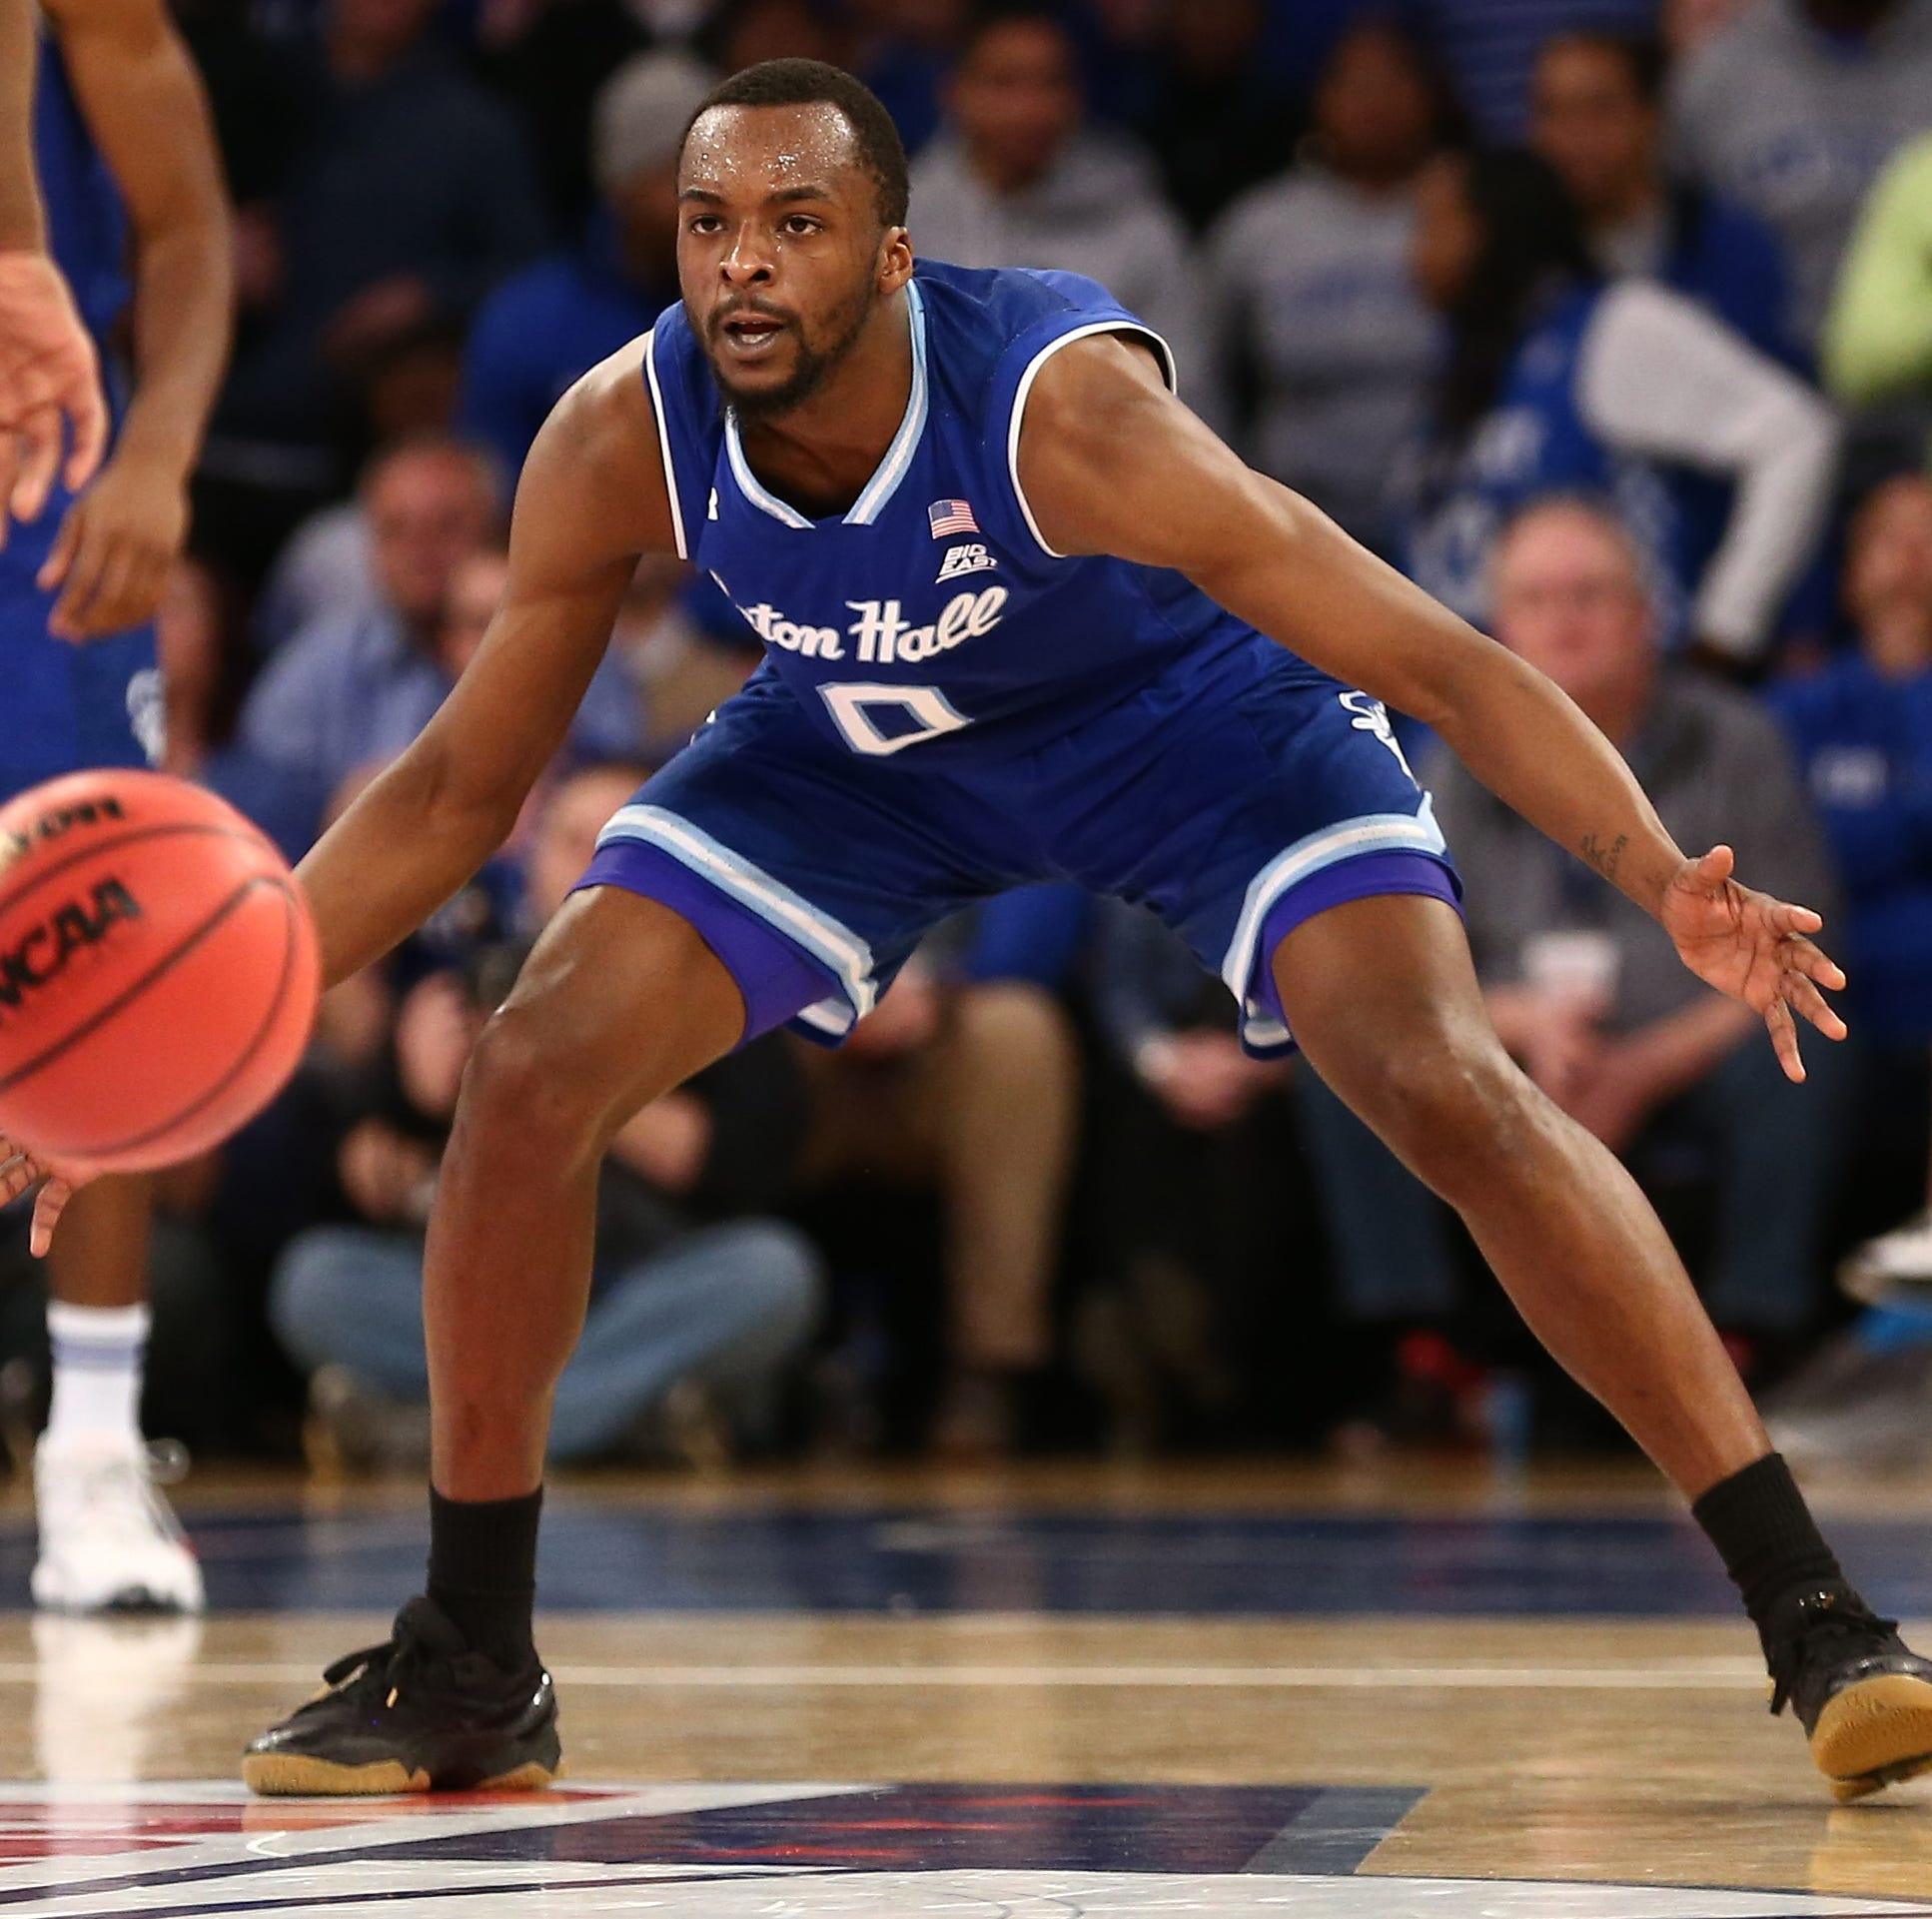 Seton Hall basketball: Where did Quincy McKnight come from?